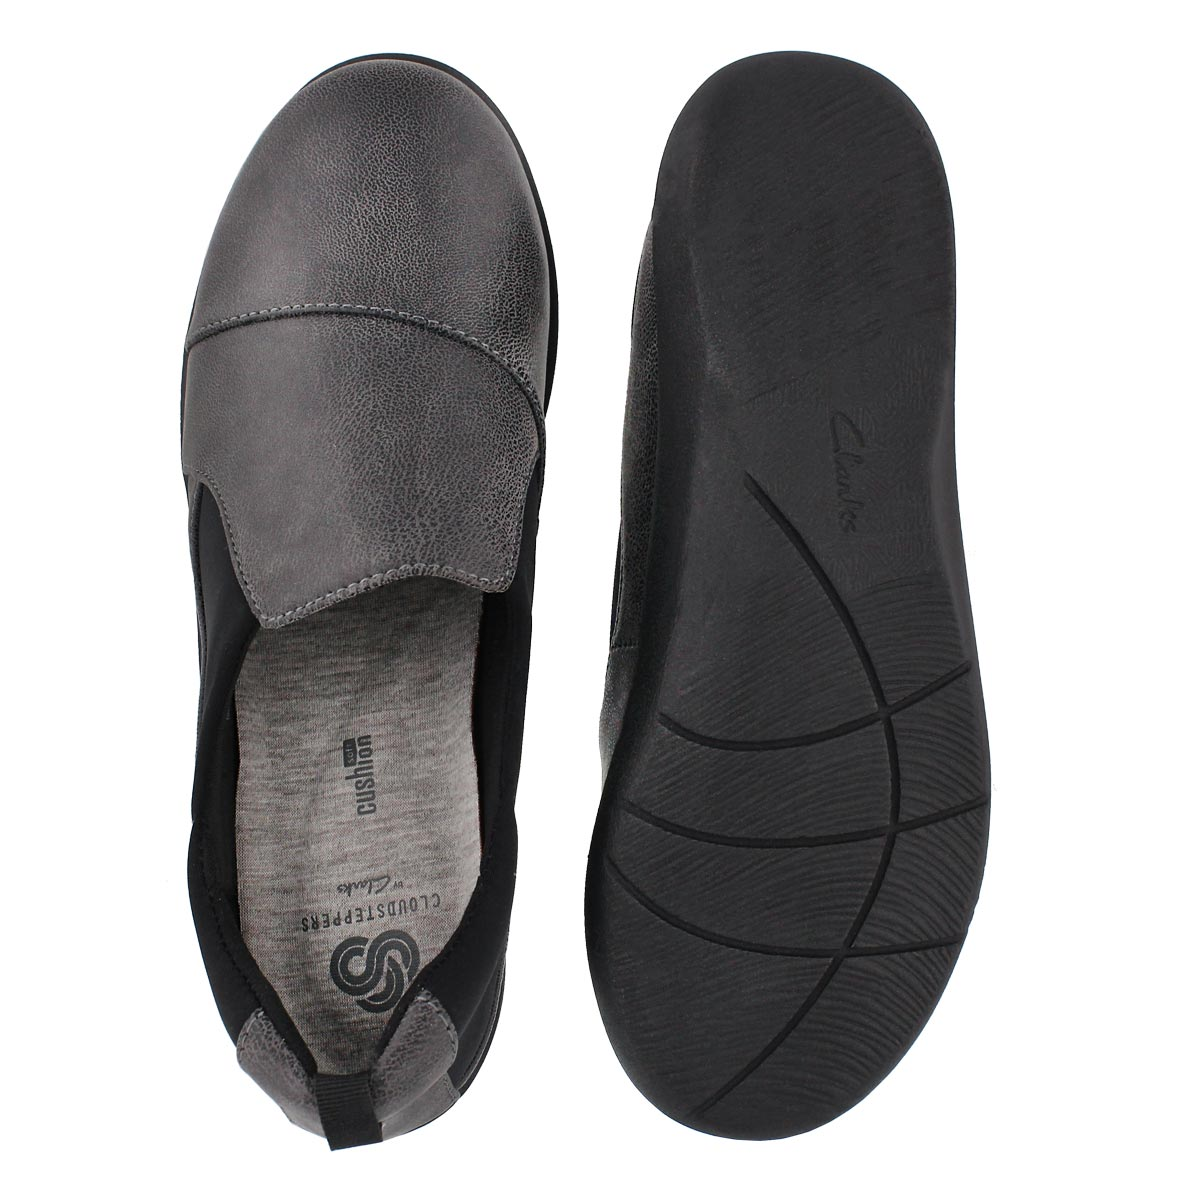 Lds Sillian Paz grey casual loafer